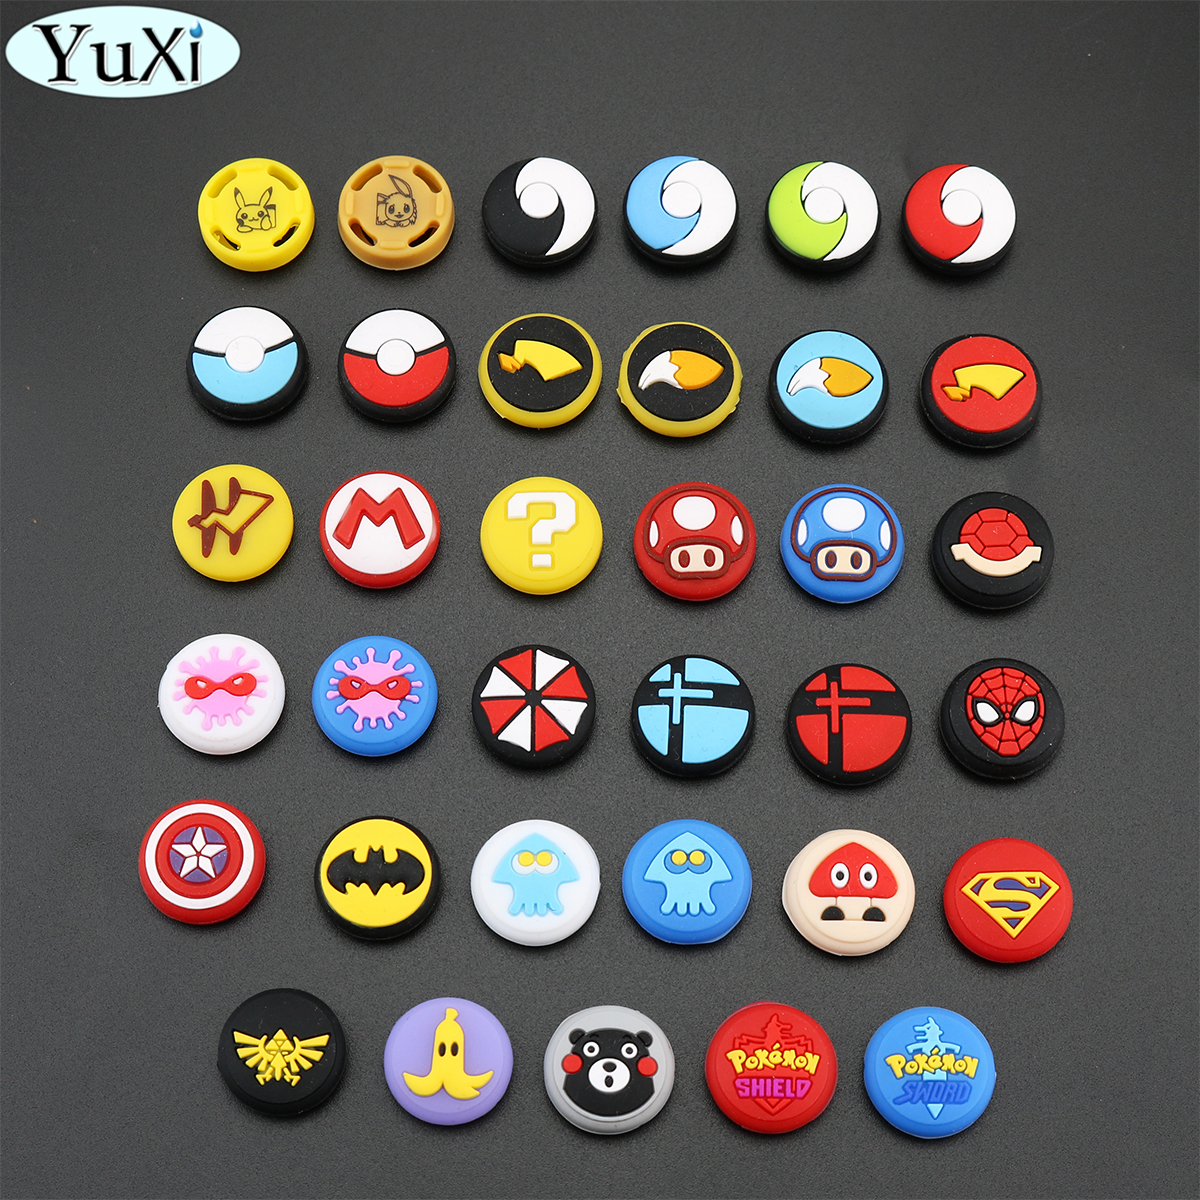 YuXi Rubber Thumb Grips Caps For Nintend Switch NS Joycon Silicone Non-slip Sticks Grips Handle Button Caps For NS Lite Joy Con